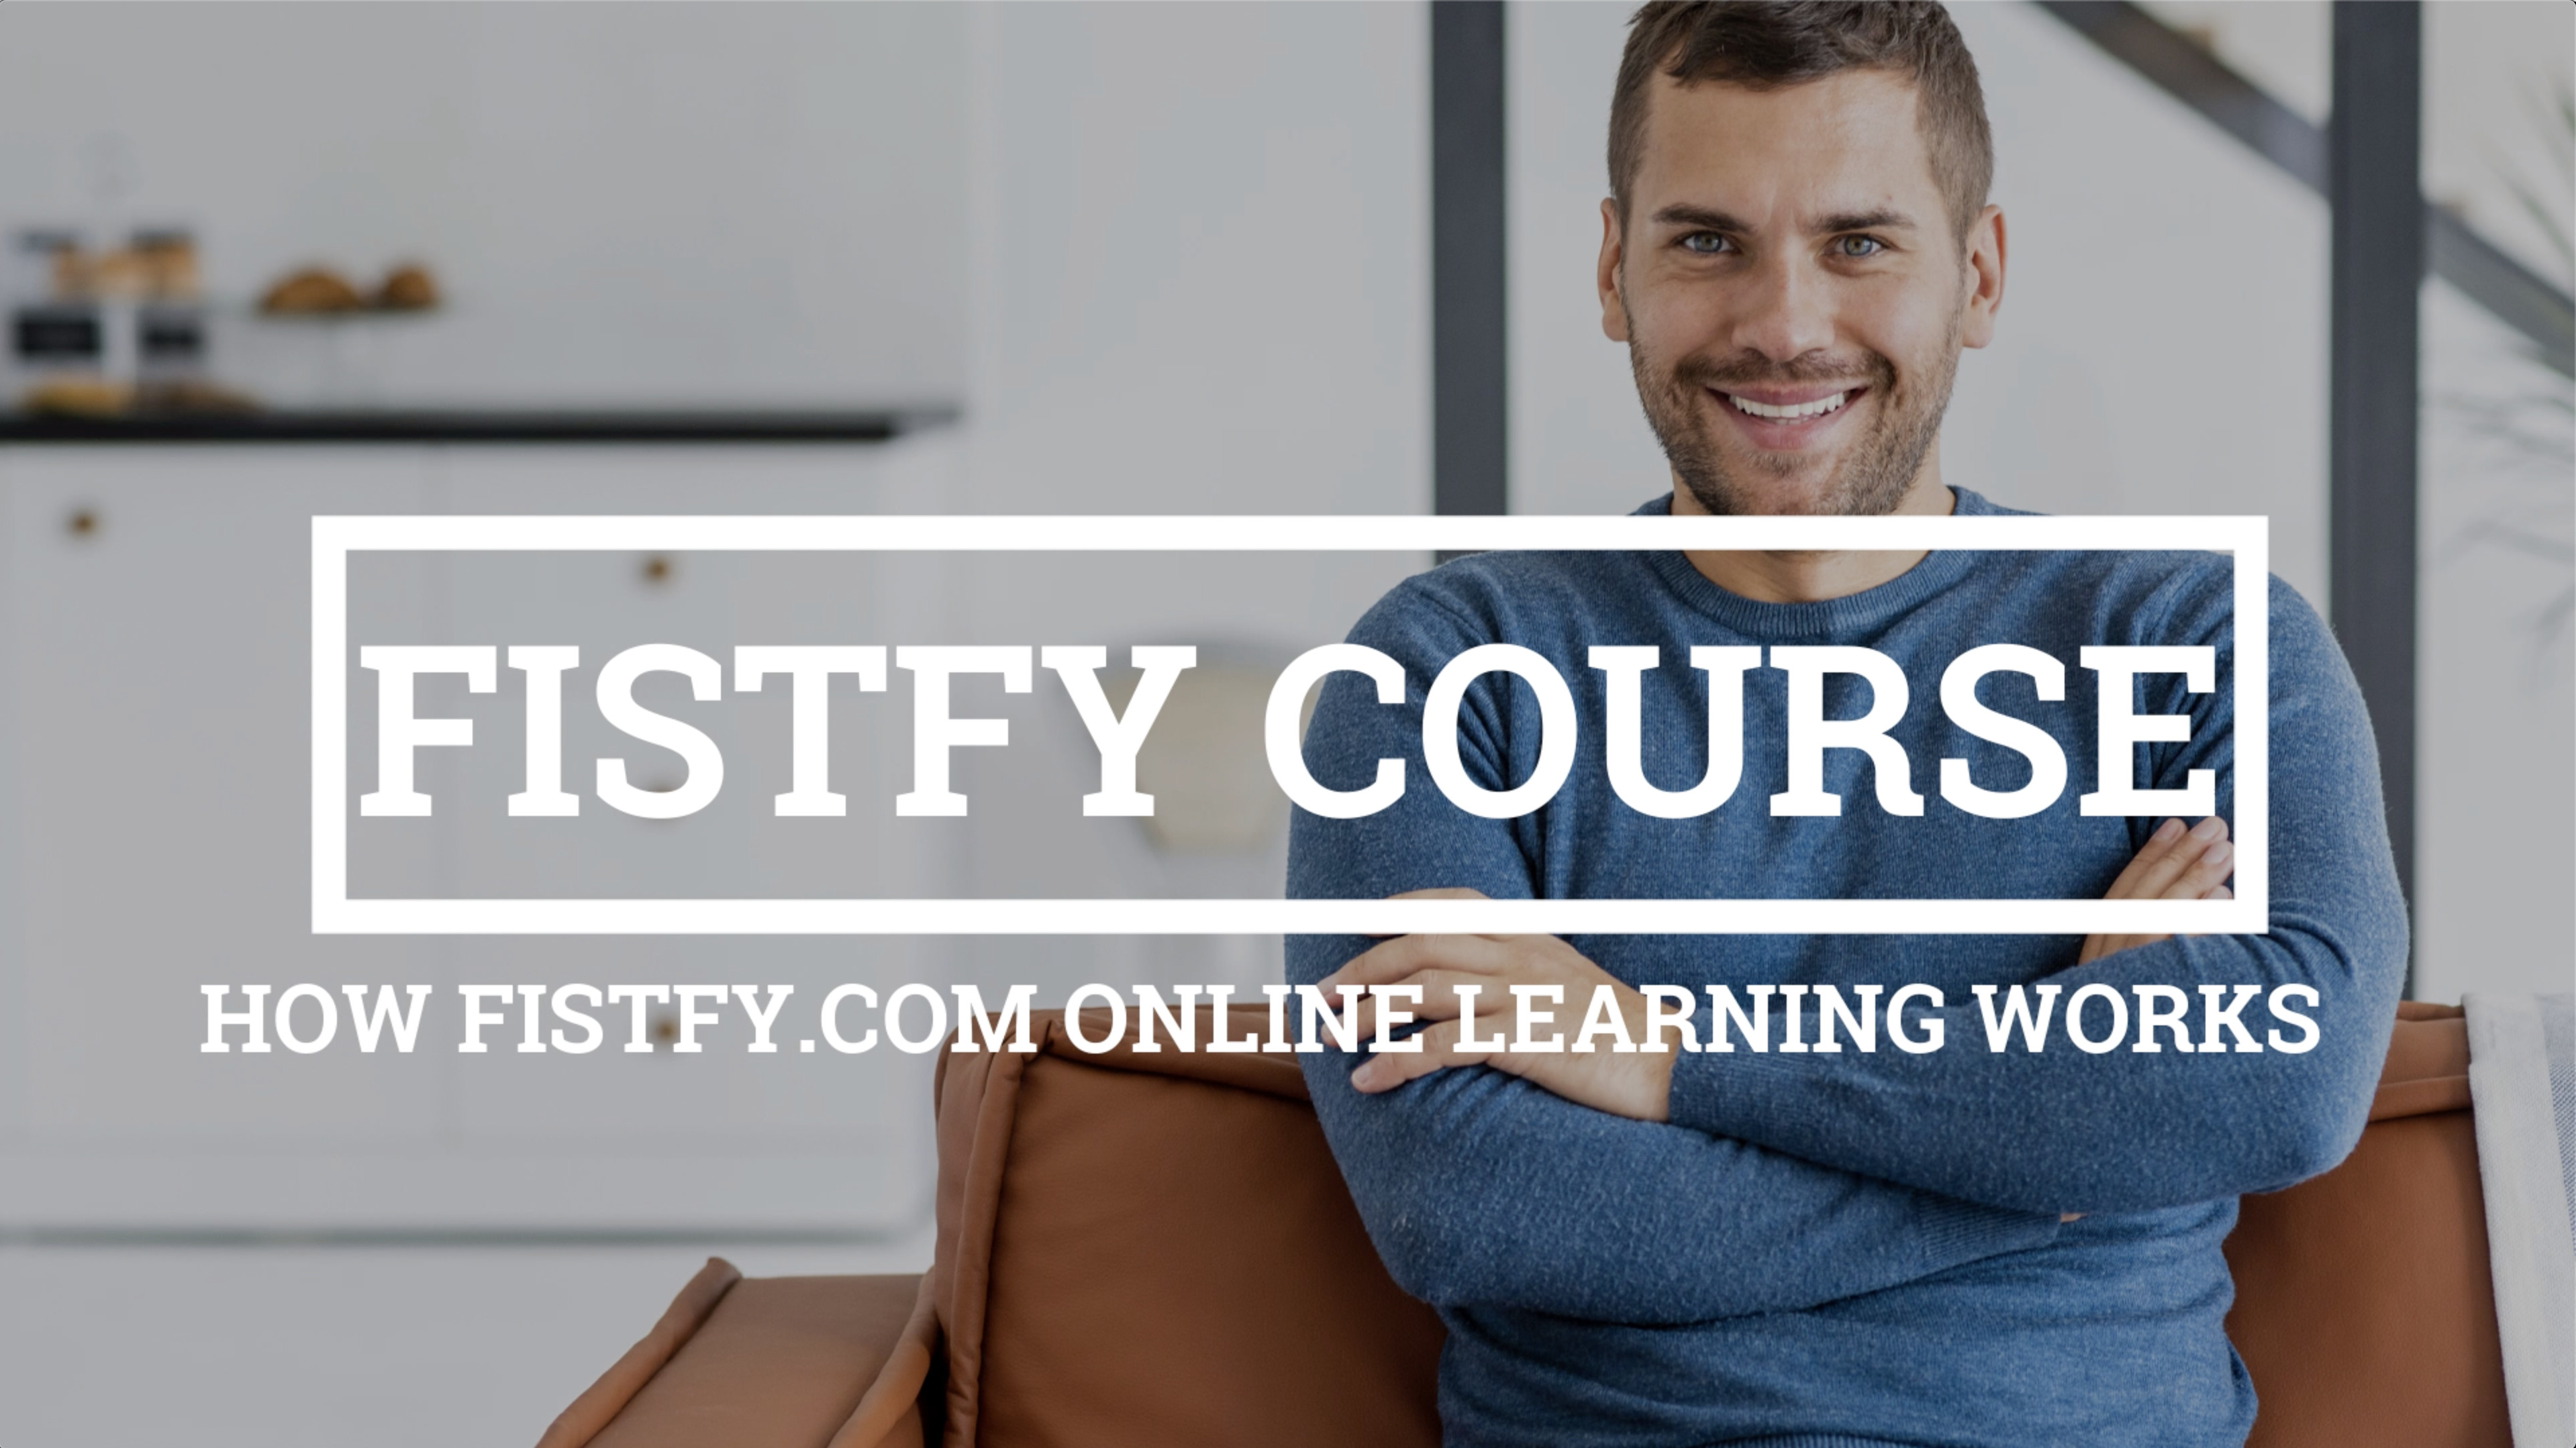 This is How to Fistfy Online Learning works – Fistfy, How to take a Fistfy online course?